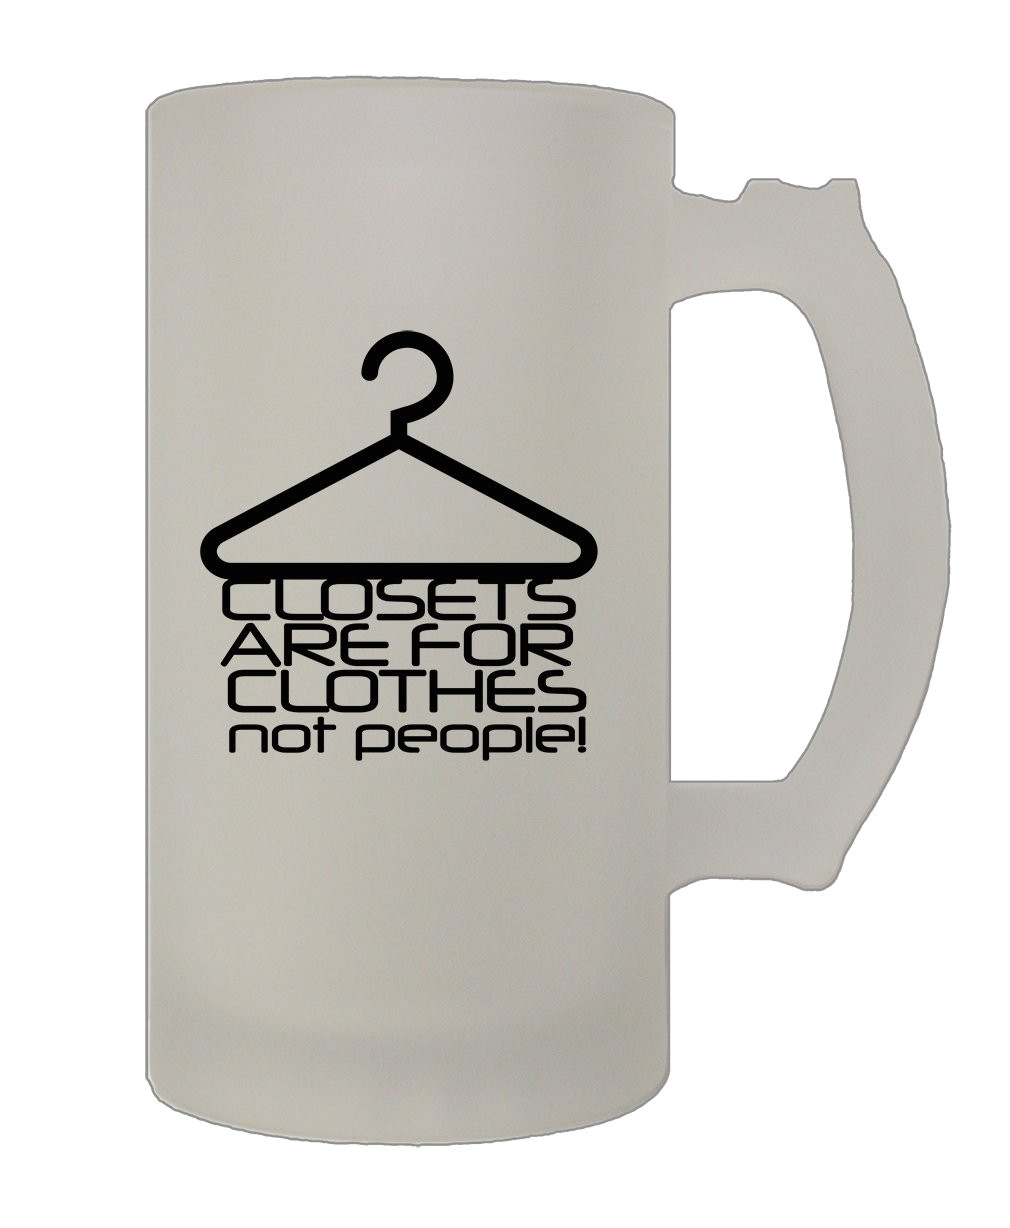 amazon com style in print closest are for clothes not people funny holidays 16 oz glass stein beer mug kitchen dining